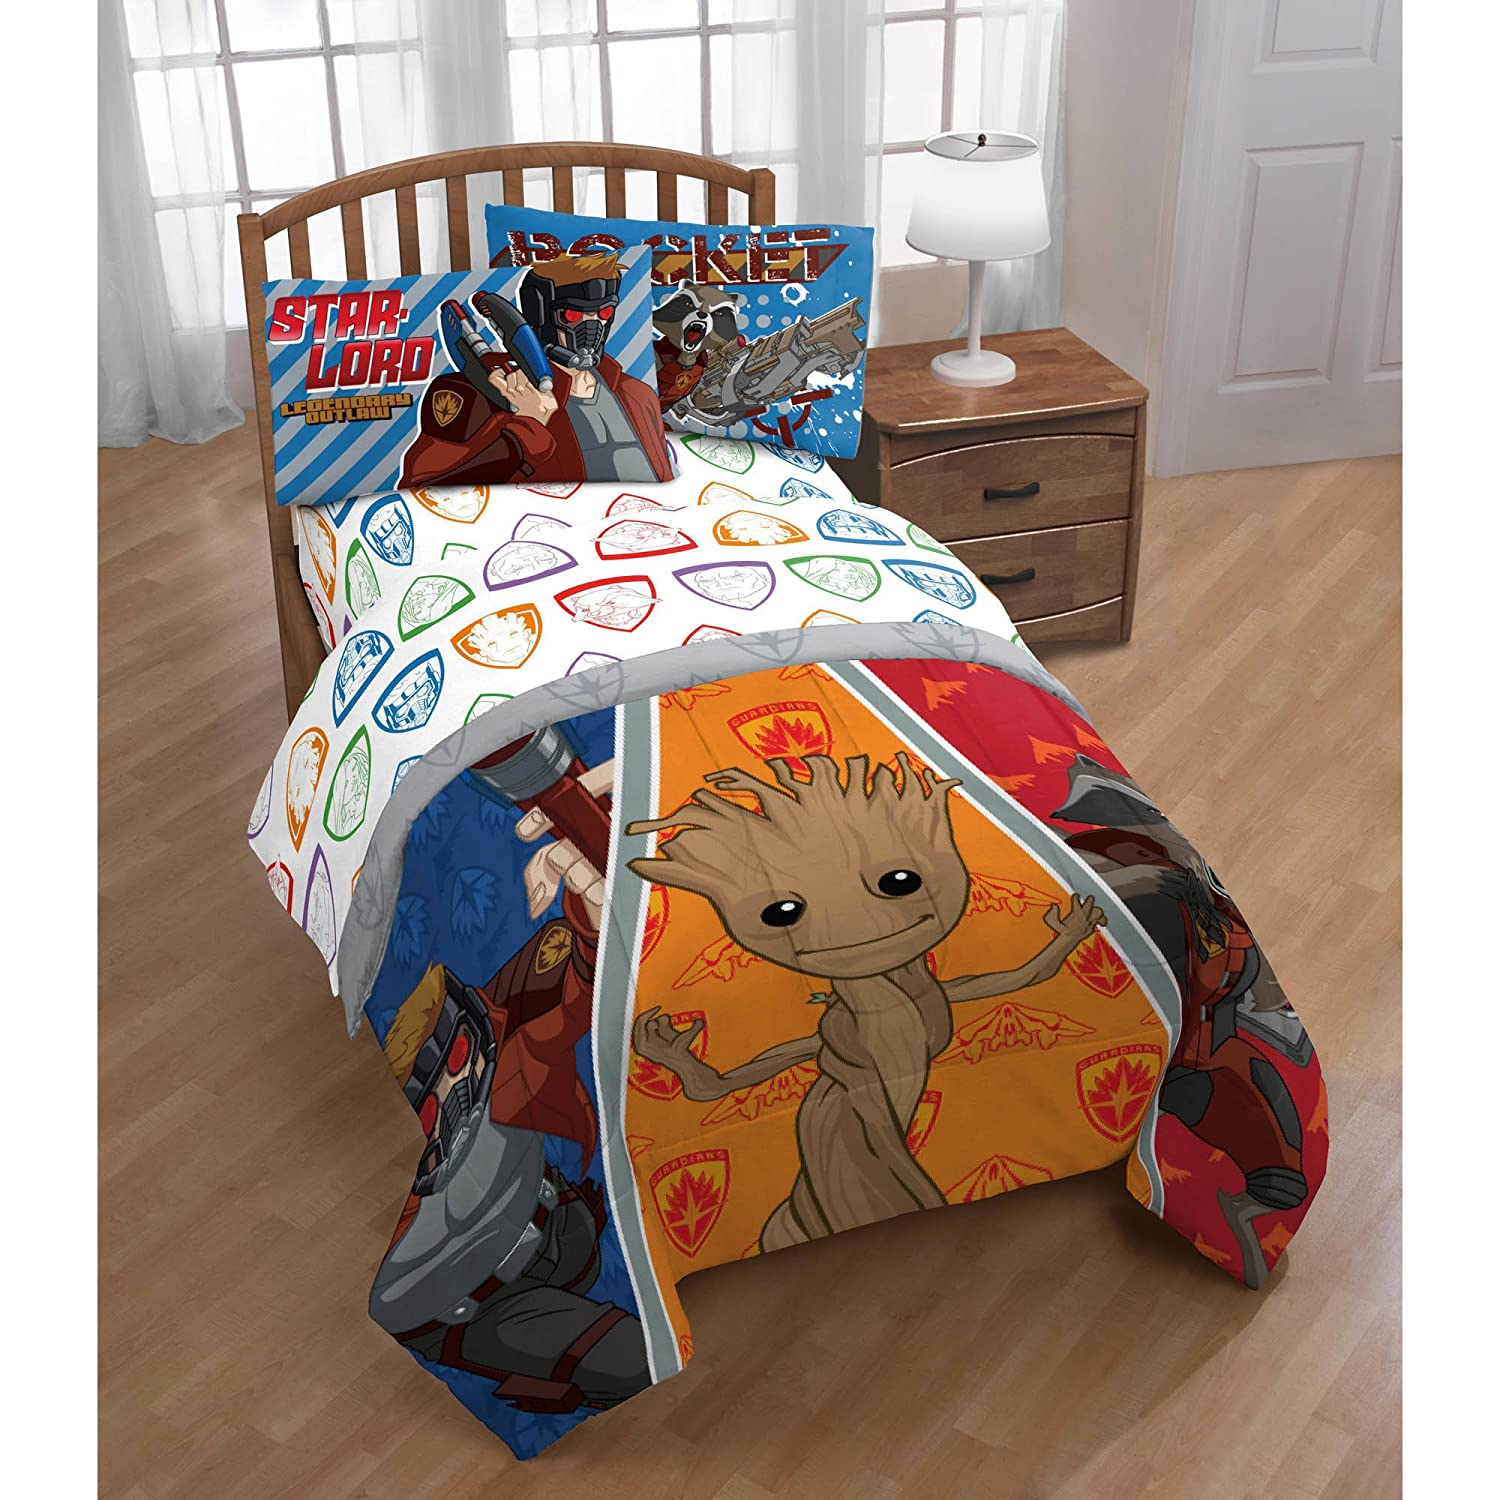 Guardians of the Galaxy 2, Twin Comforter and Sheet Set - 4 Piece J Franco